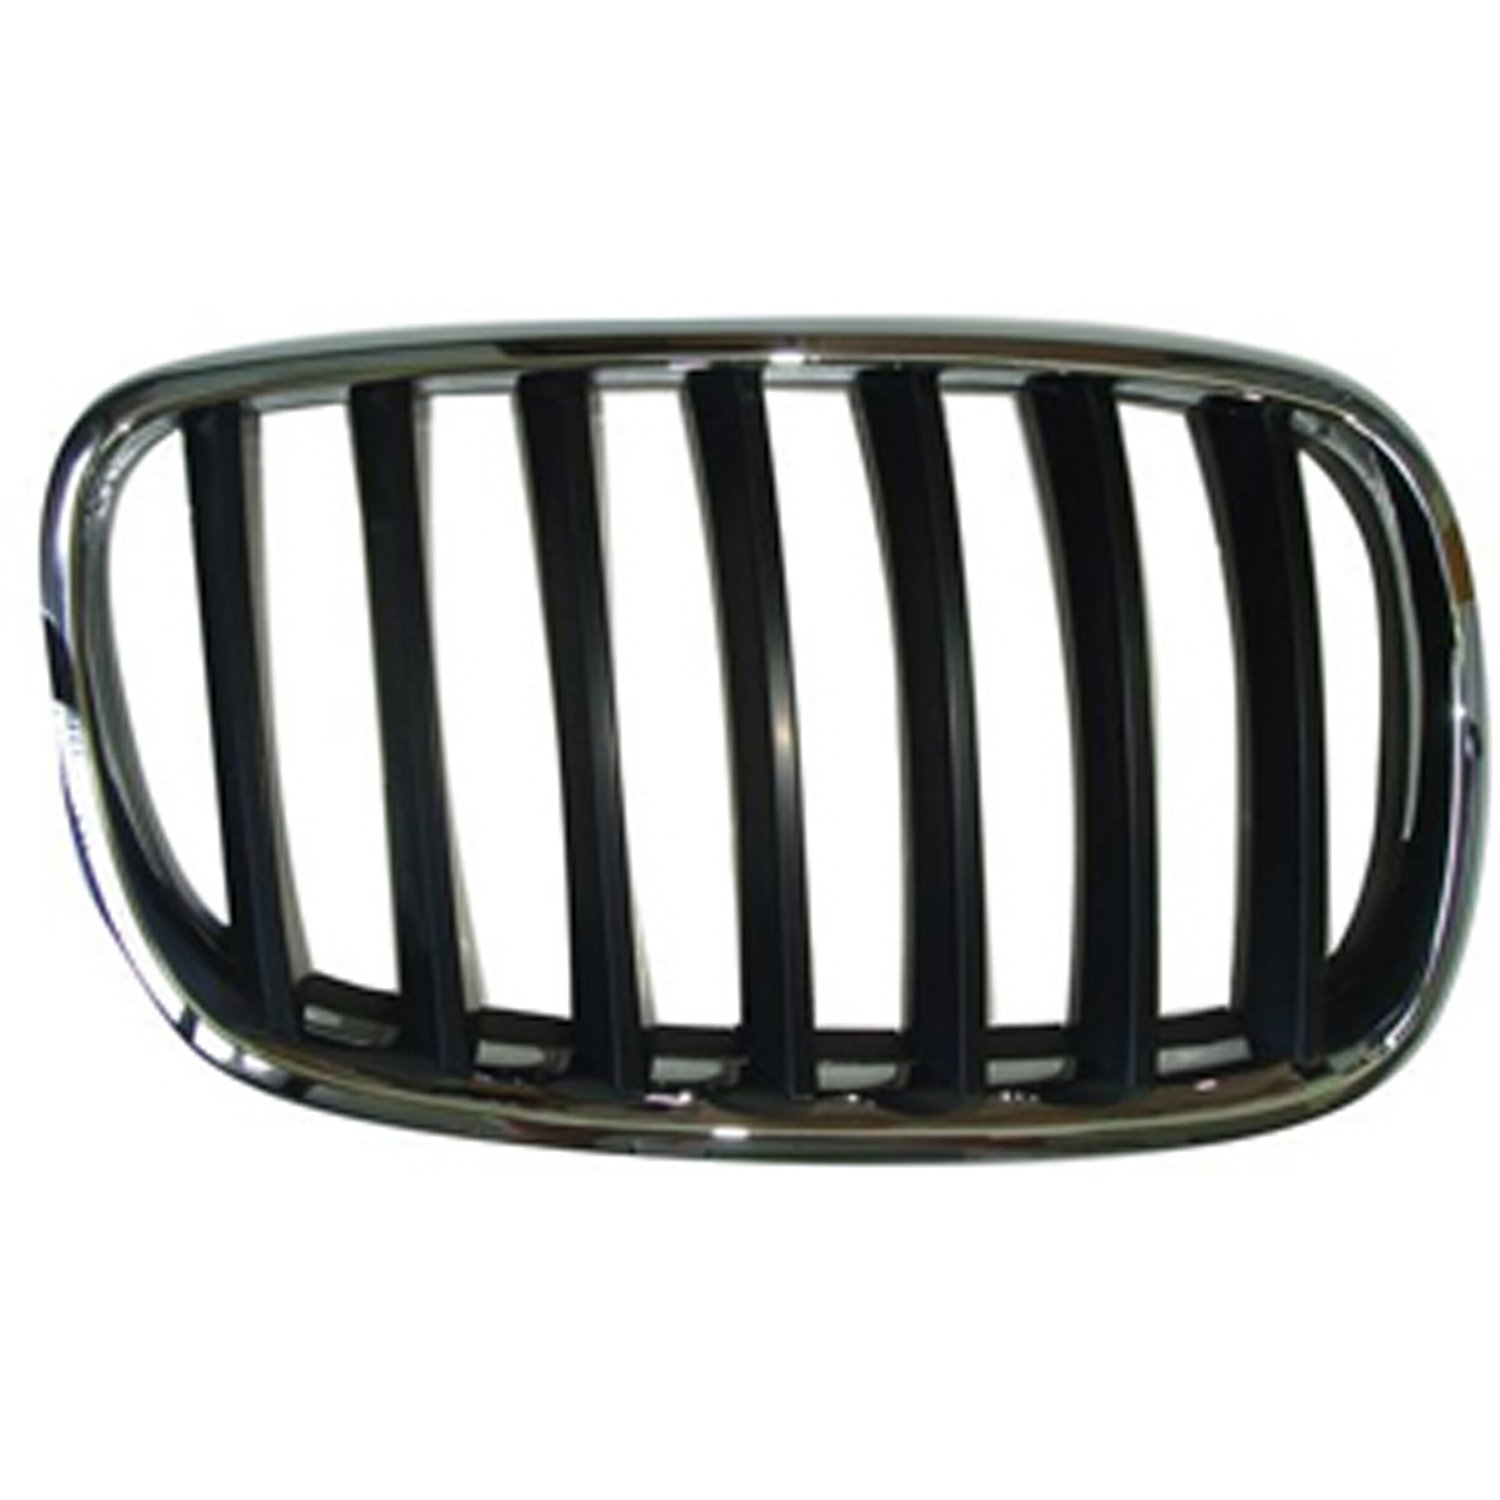 OE Replacement BMW X5/X6 Passenger Side Grille Assembly (Partslink Number BM1200181) Unknown